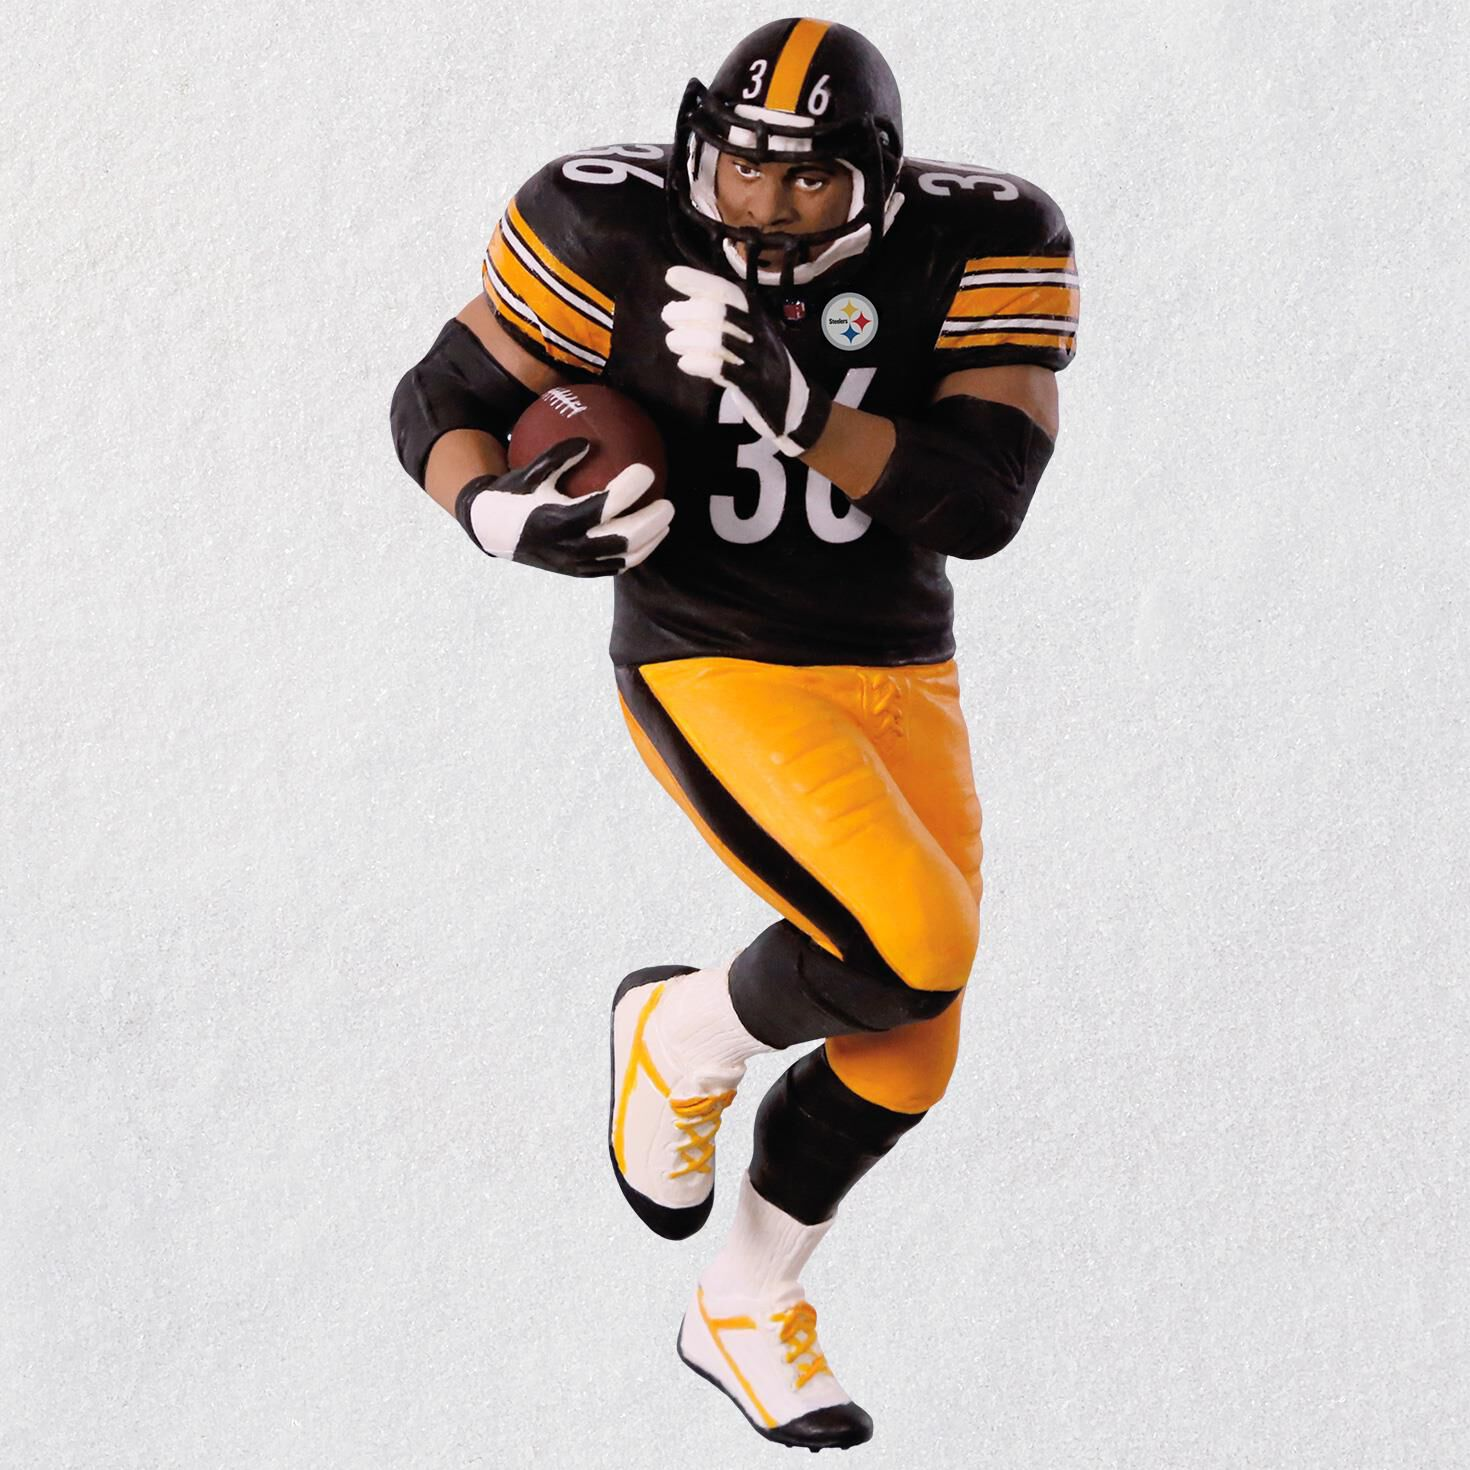 Pittsburgh Steelers Jerome Bettis Ornament   Keepsake Ornaments   Hallmark